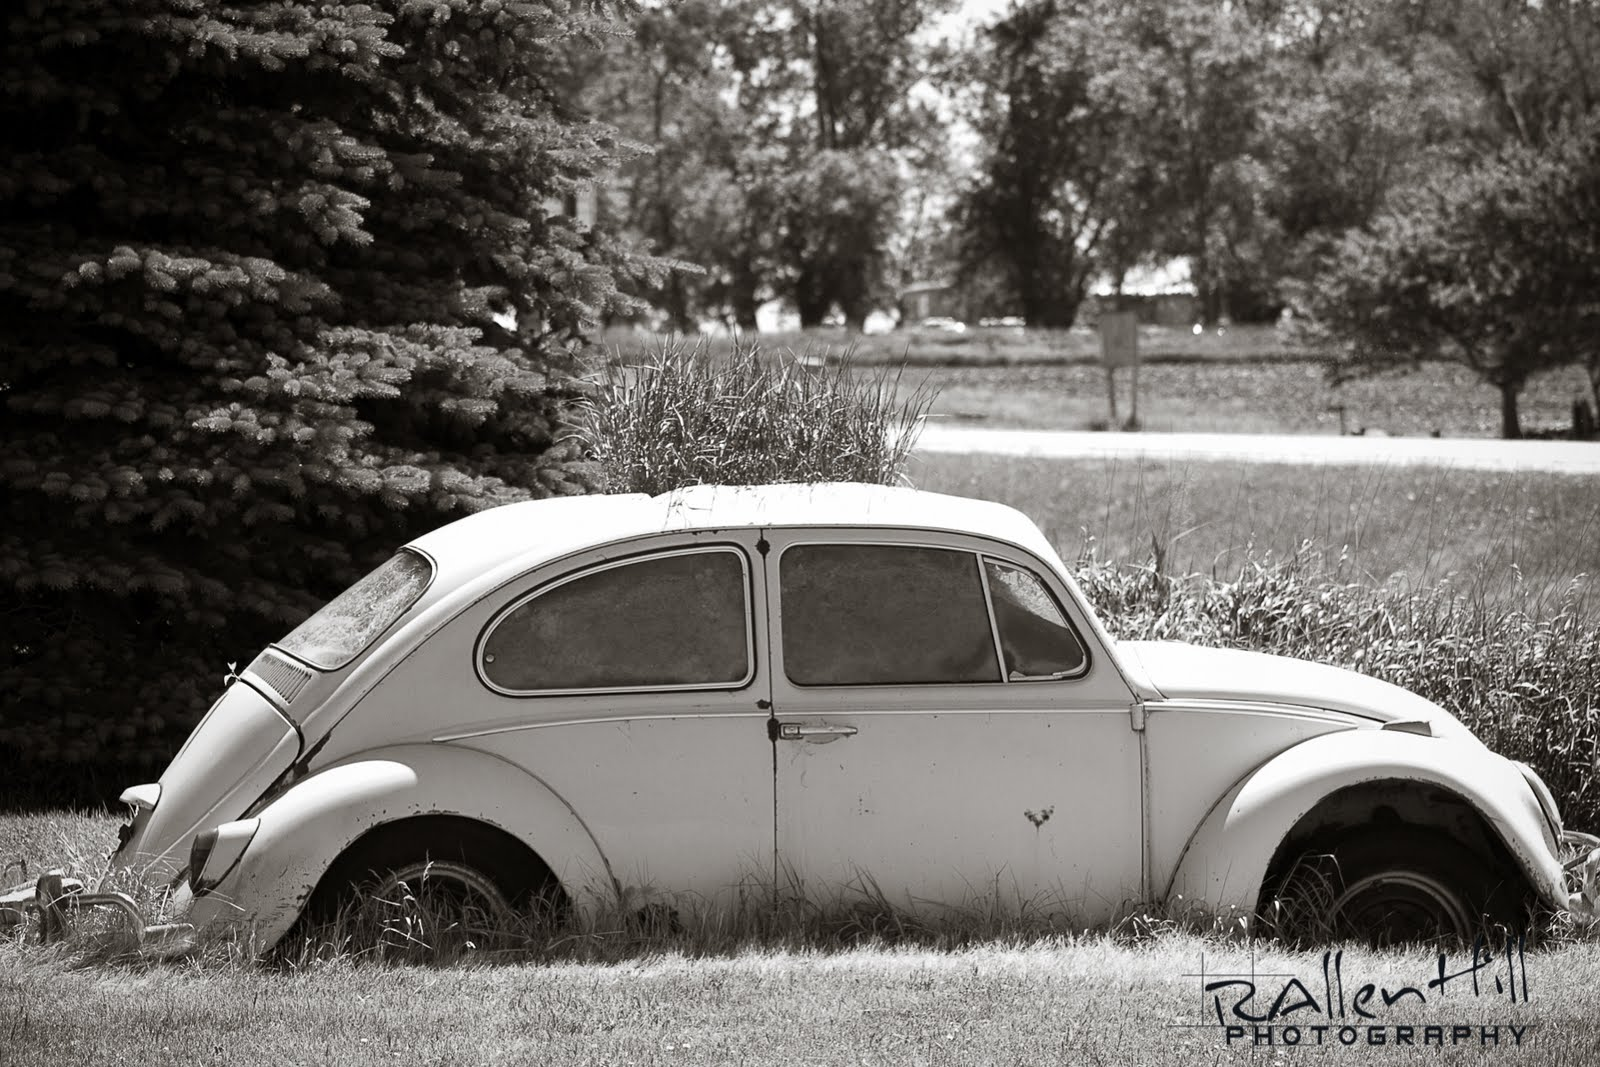 This Old VW has been sitting in this spot for years - and we've been driving